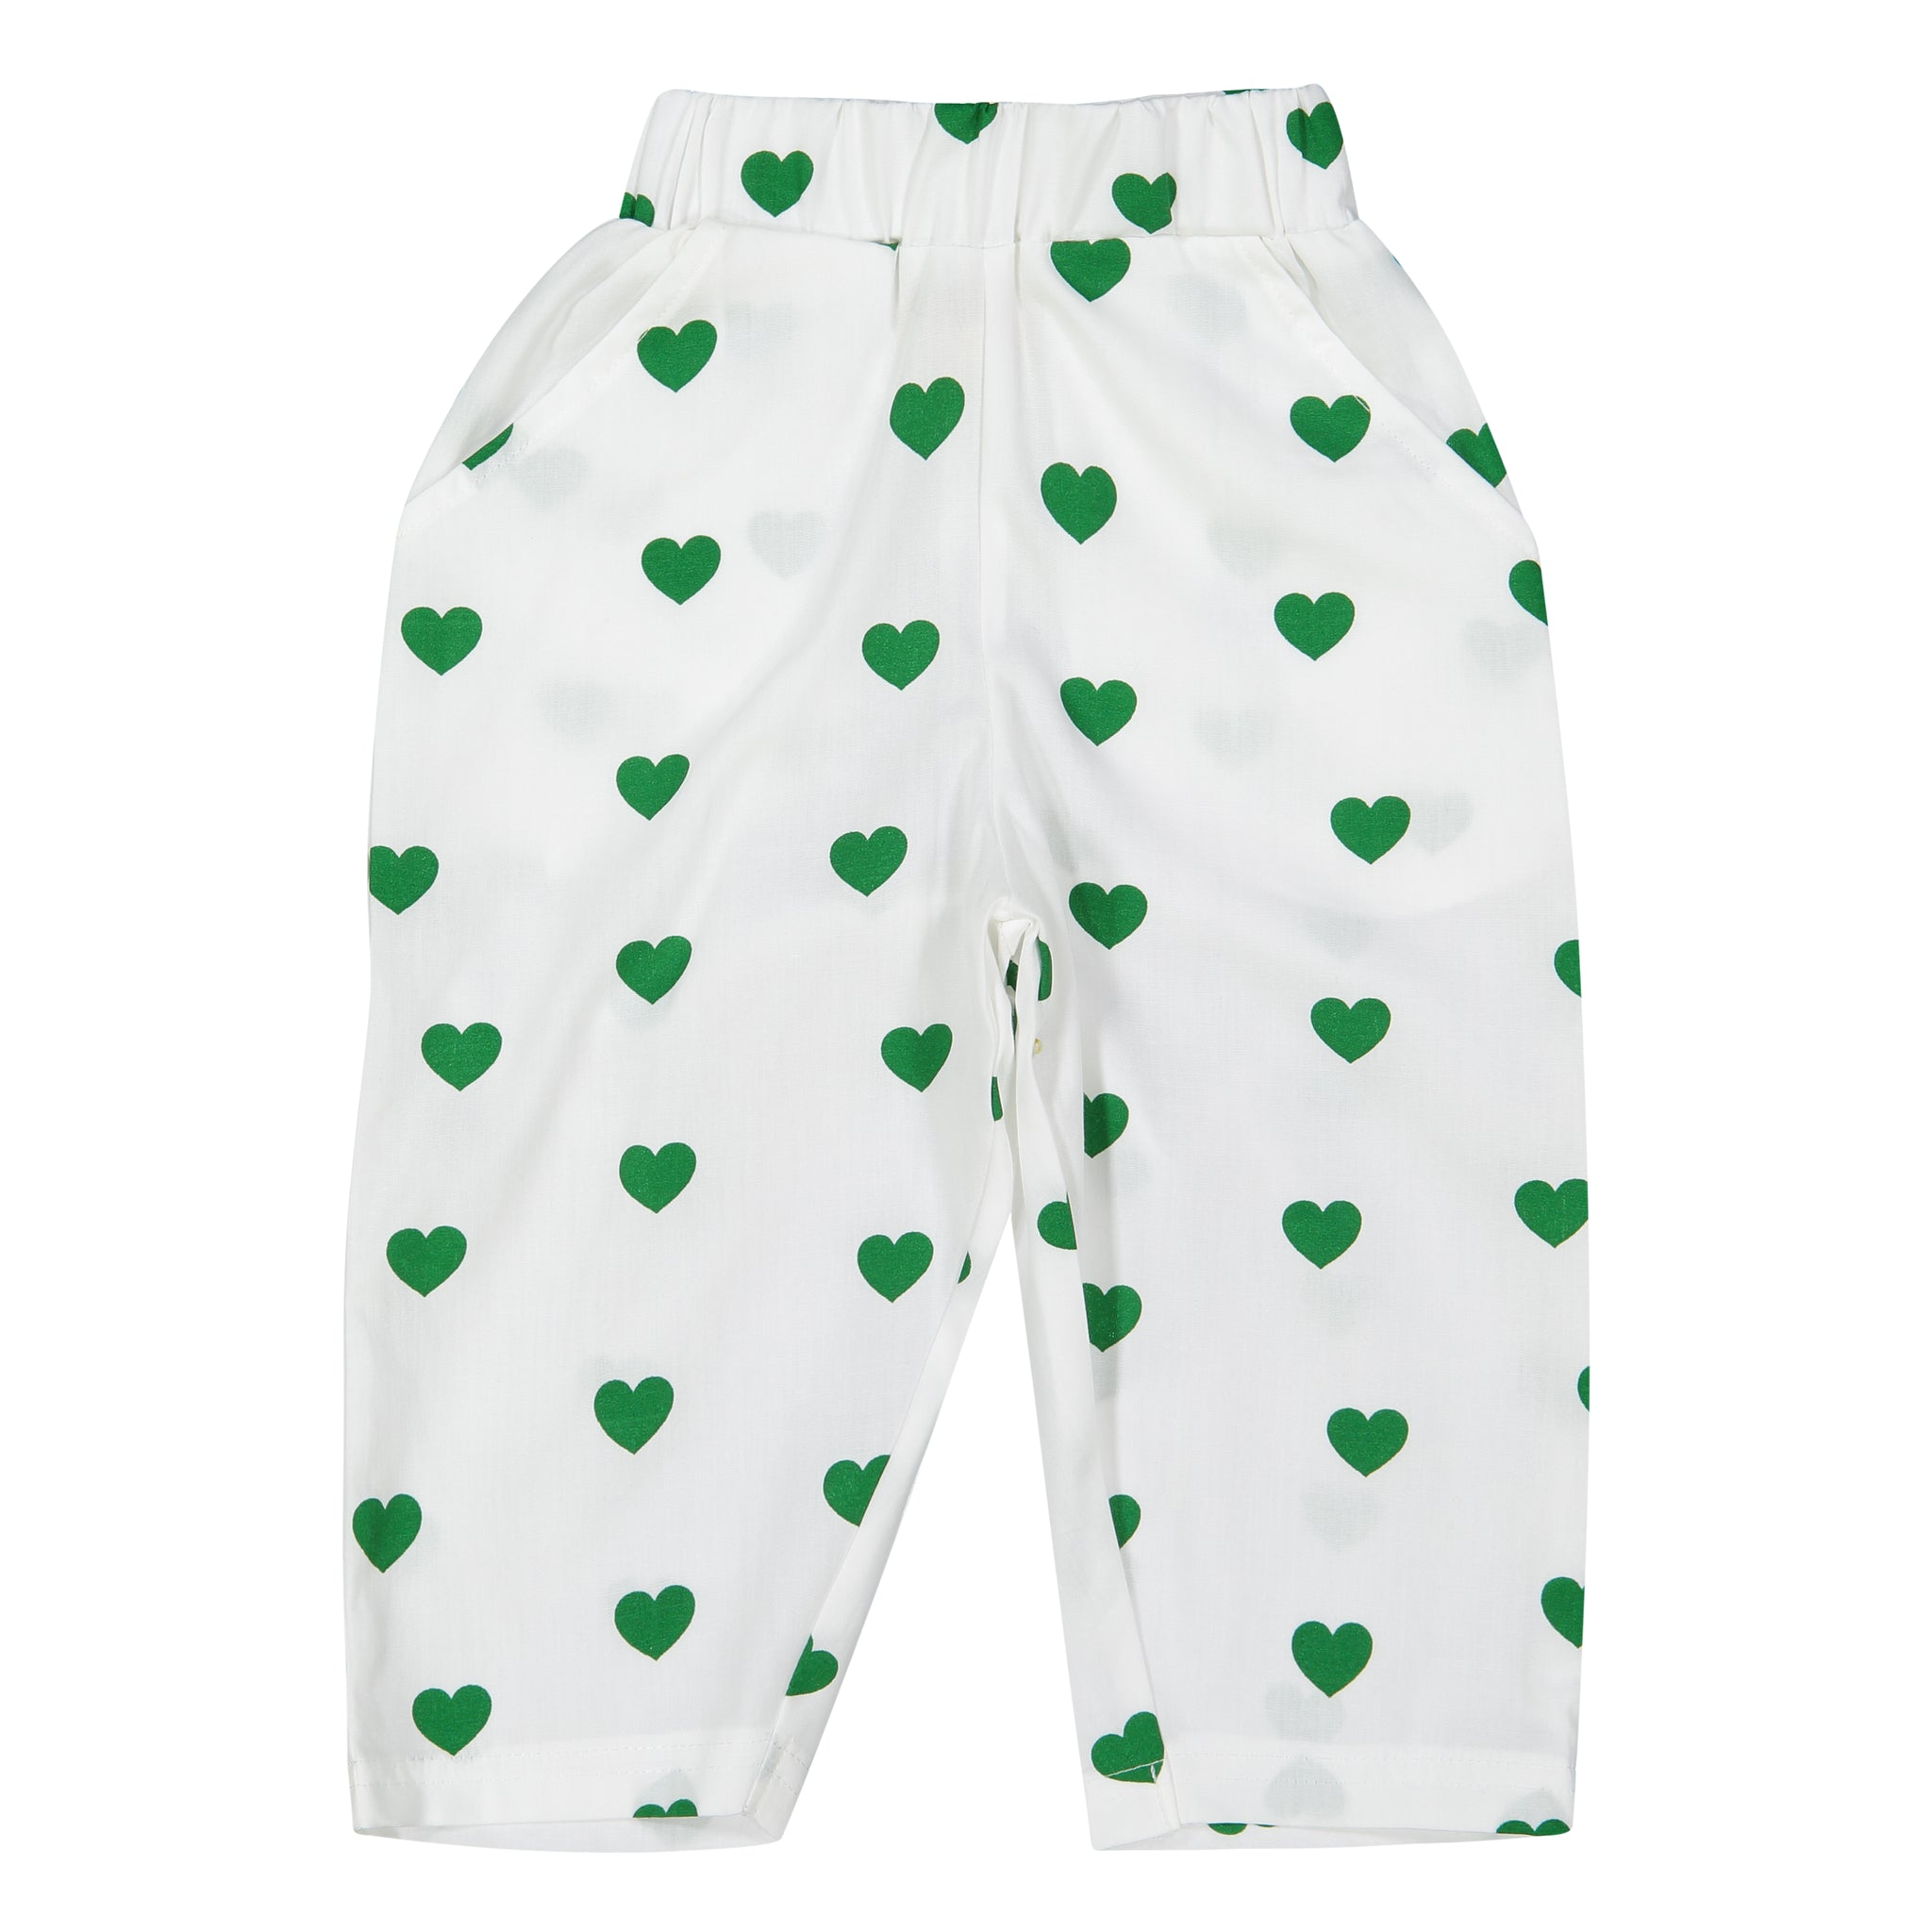 Tulip Pants - Green Hearts